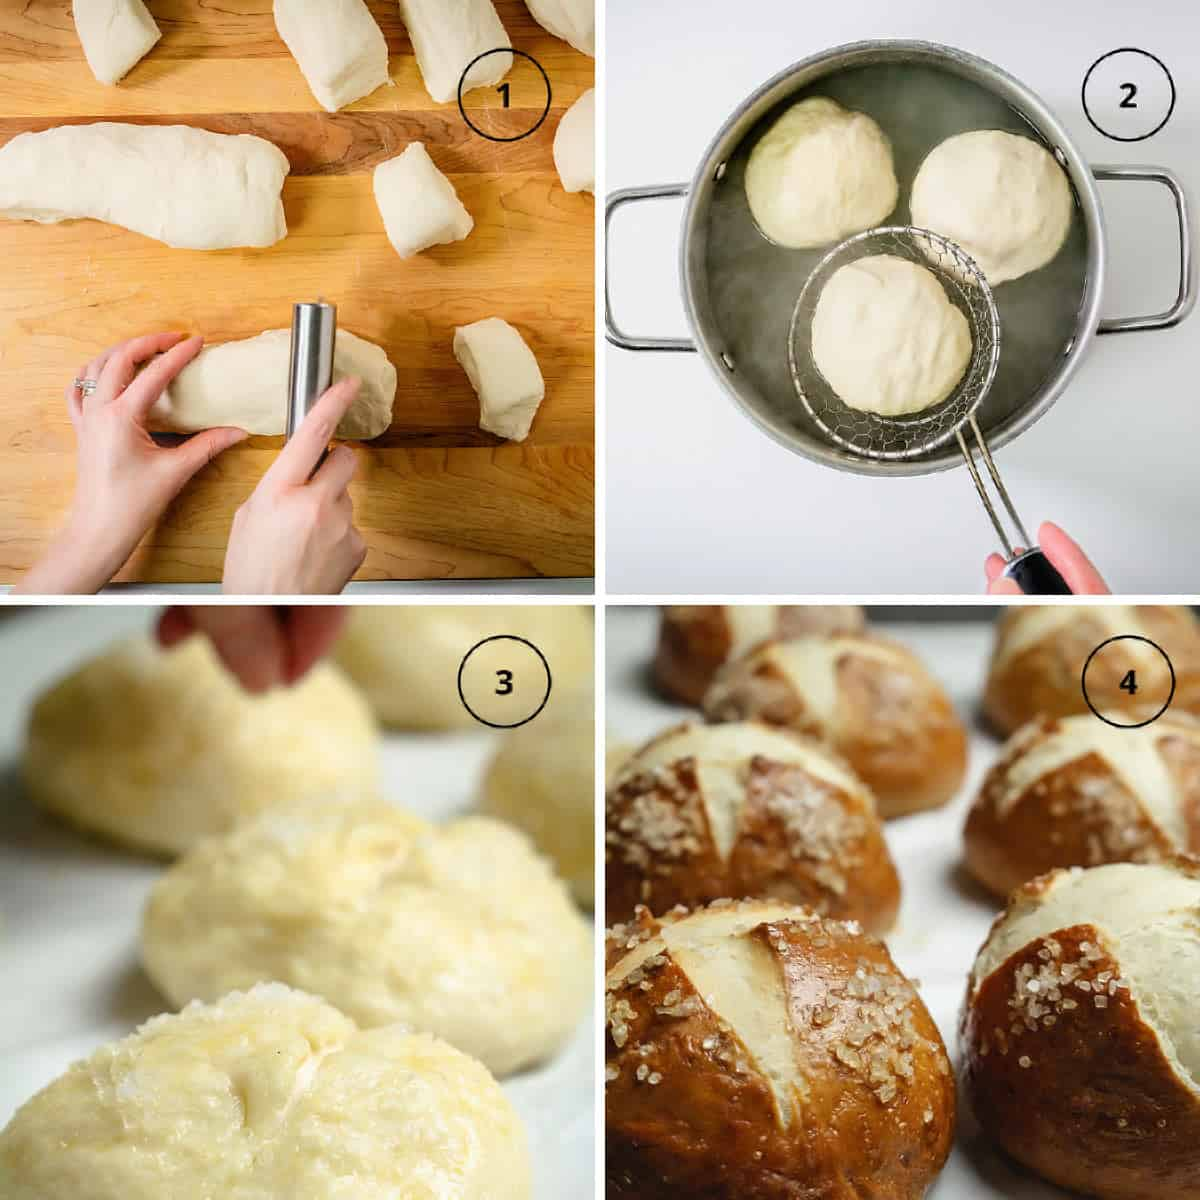 Four images of dough being shaped into balls, dipped in hot lye water, sprinkled with coarse salt, and baked.